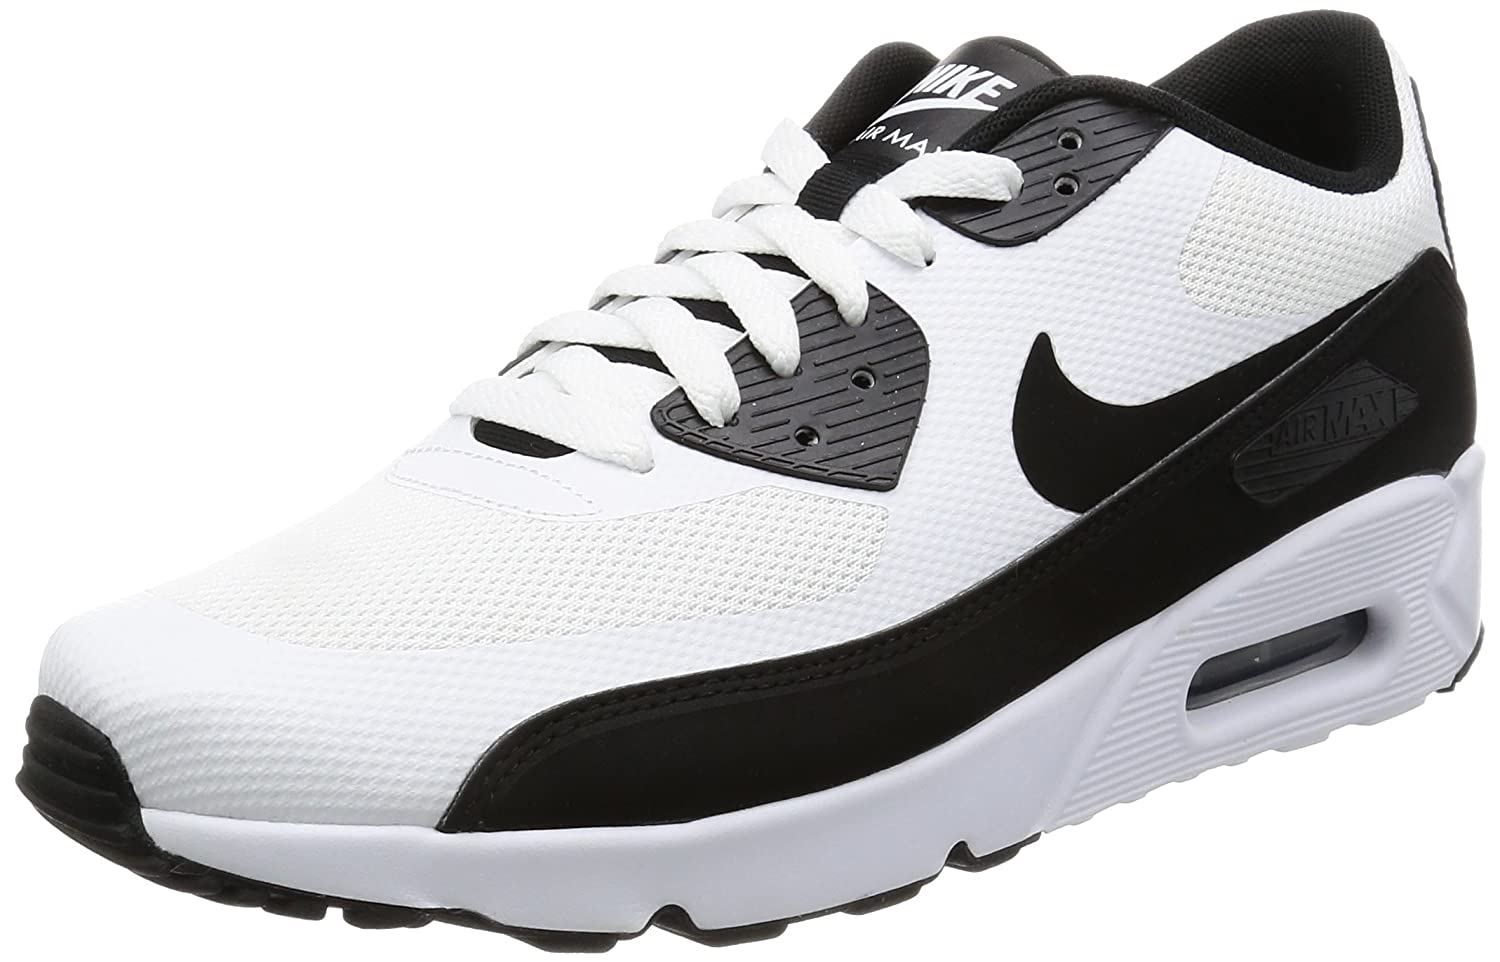 buy online db3b9 b282f Amazon.com   Nike AIR MAX 90 ULTRA 2.0 ESSENTIAL mens fashion-sneakers  875695-100 13 - WHITE BLACK-WHITE   Road Running